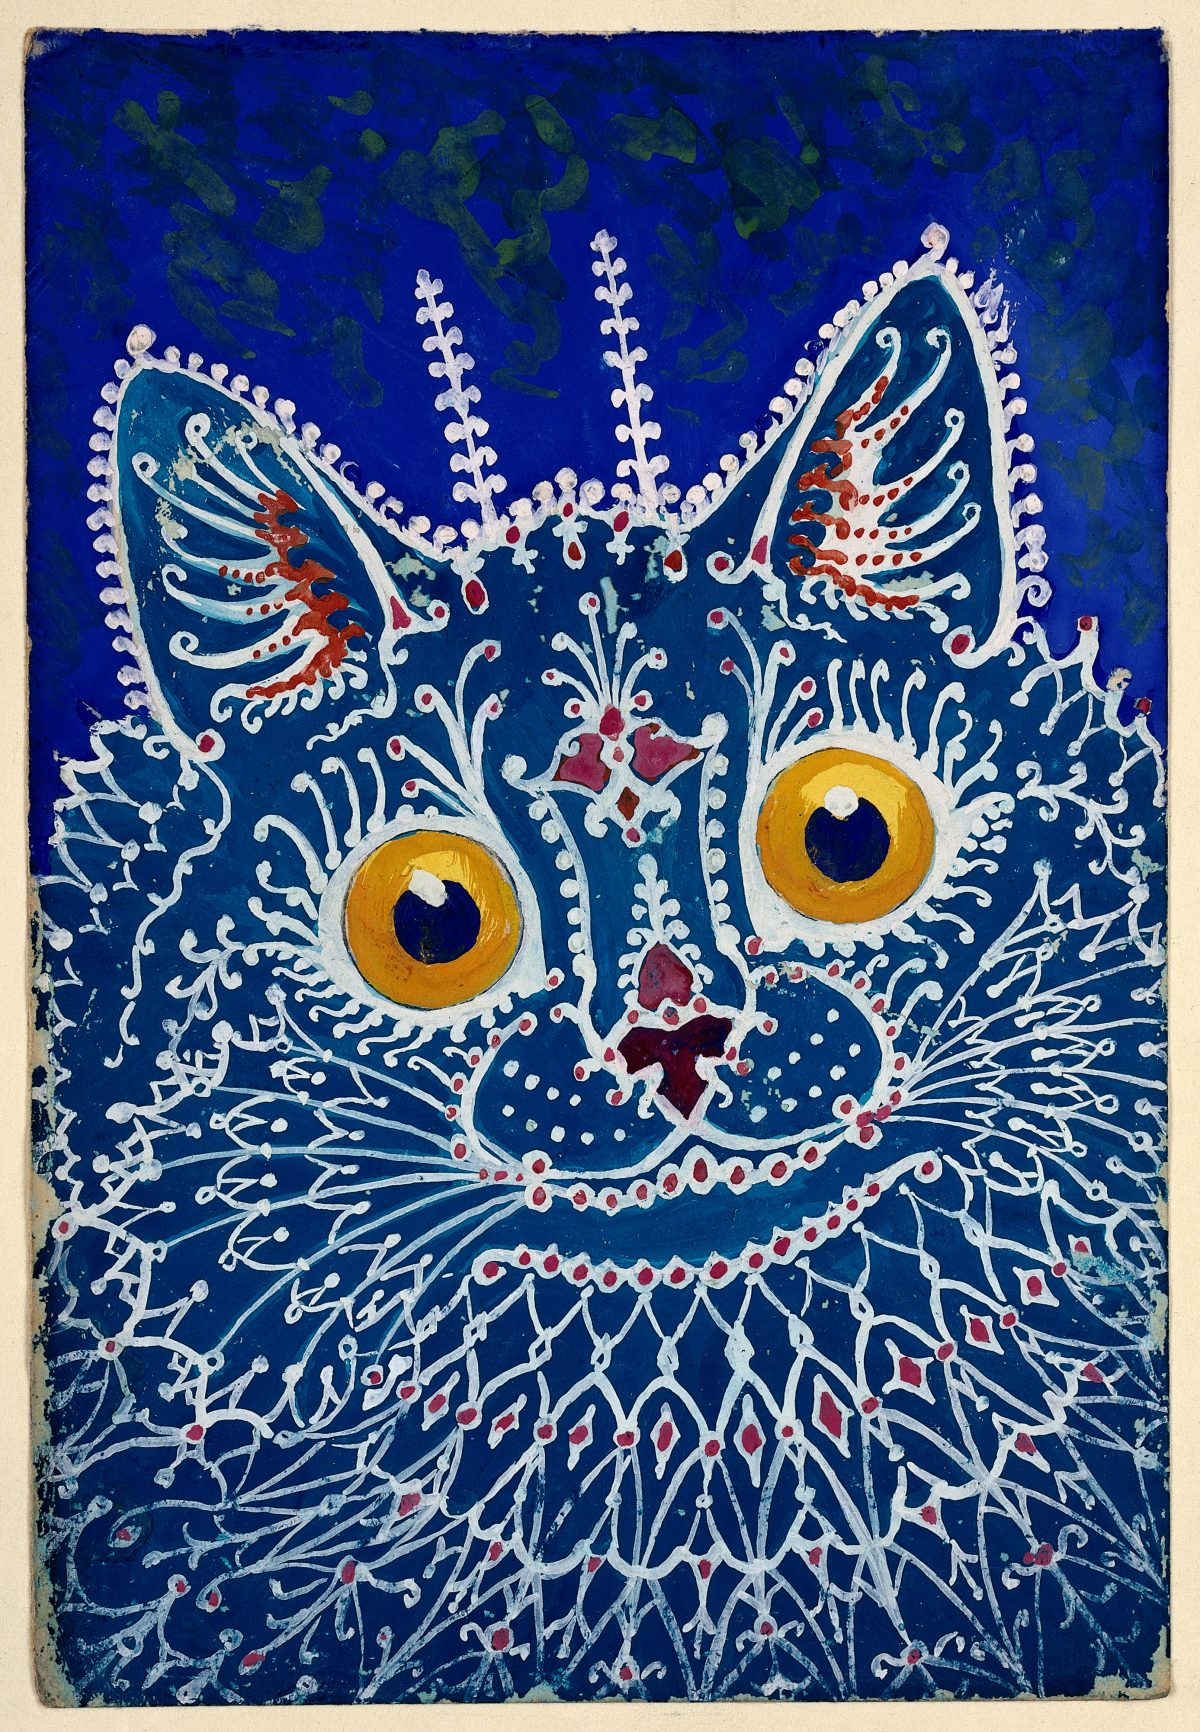 Louis Wain: The Man Wh...